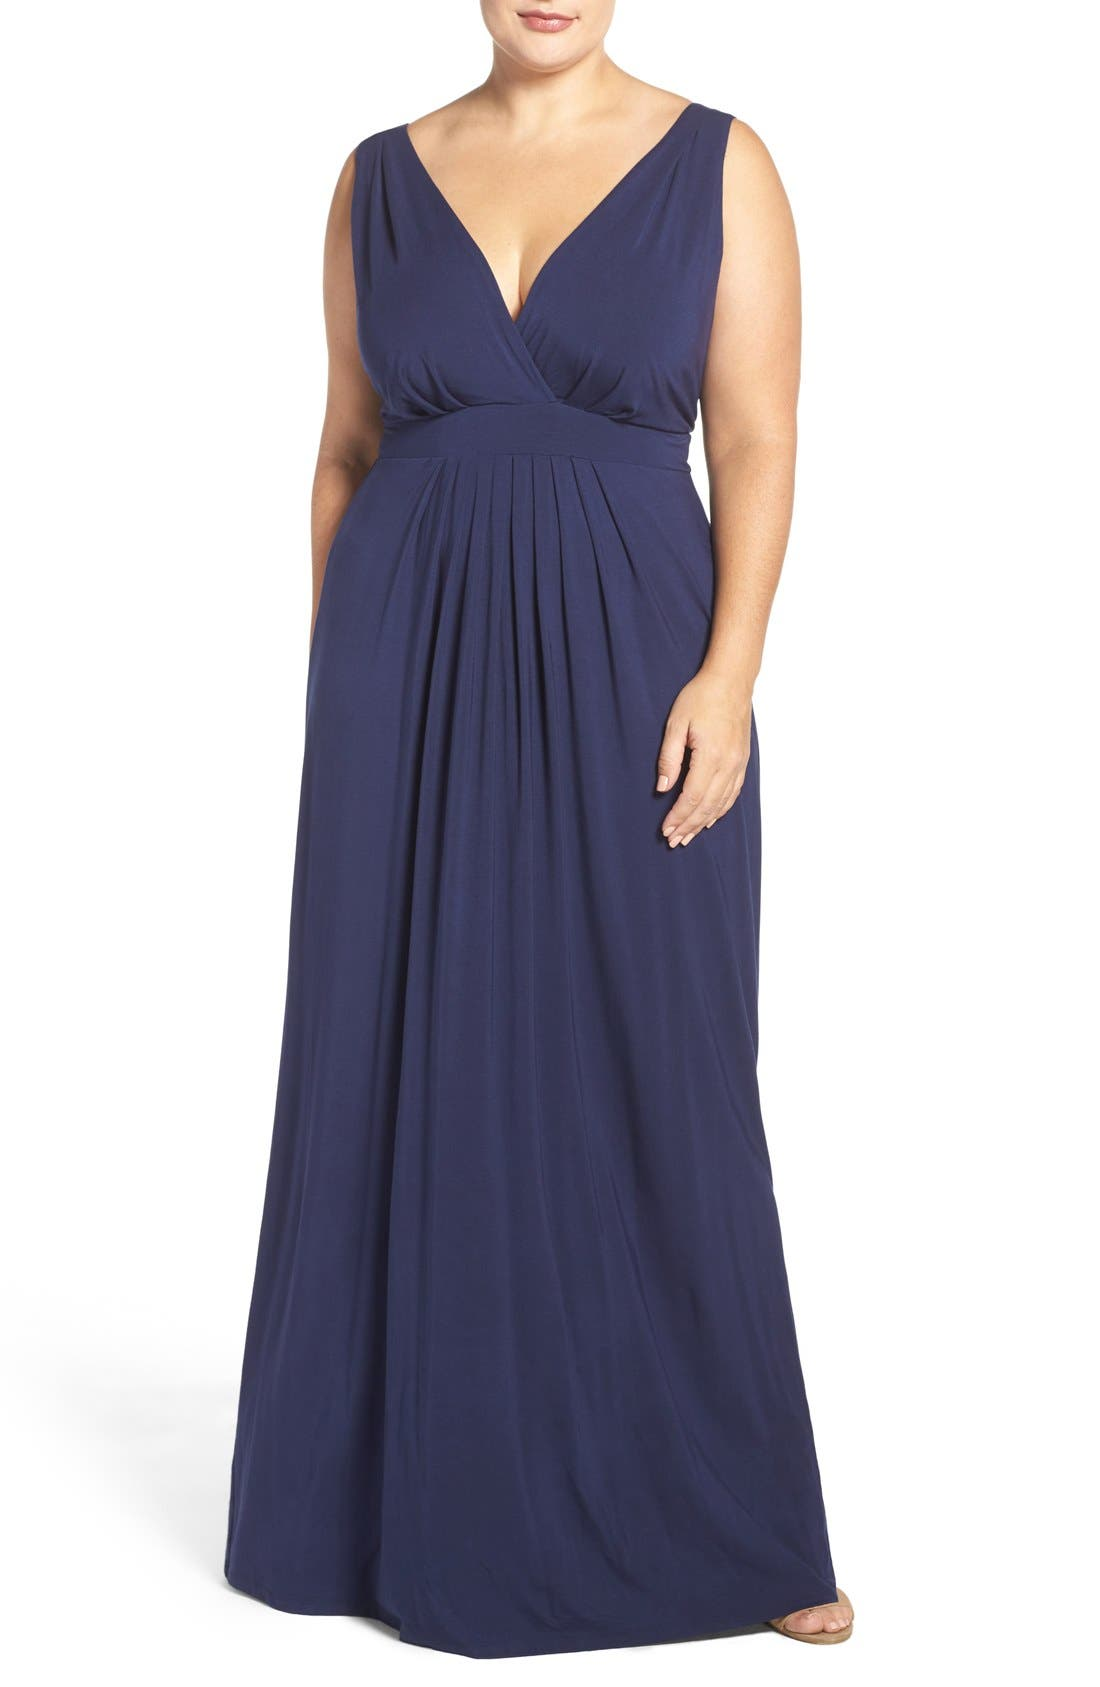 Chloe Empire Waist Maxi Dress,                             Main thumbnail 12, color,